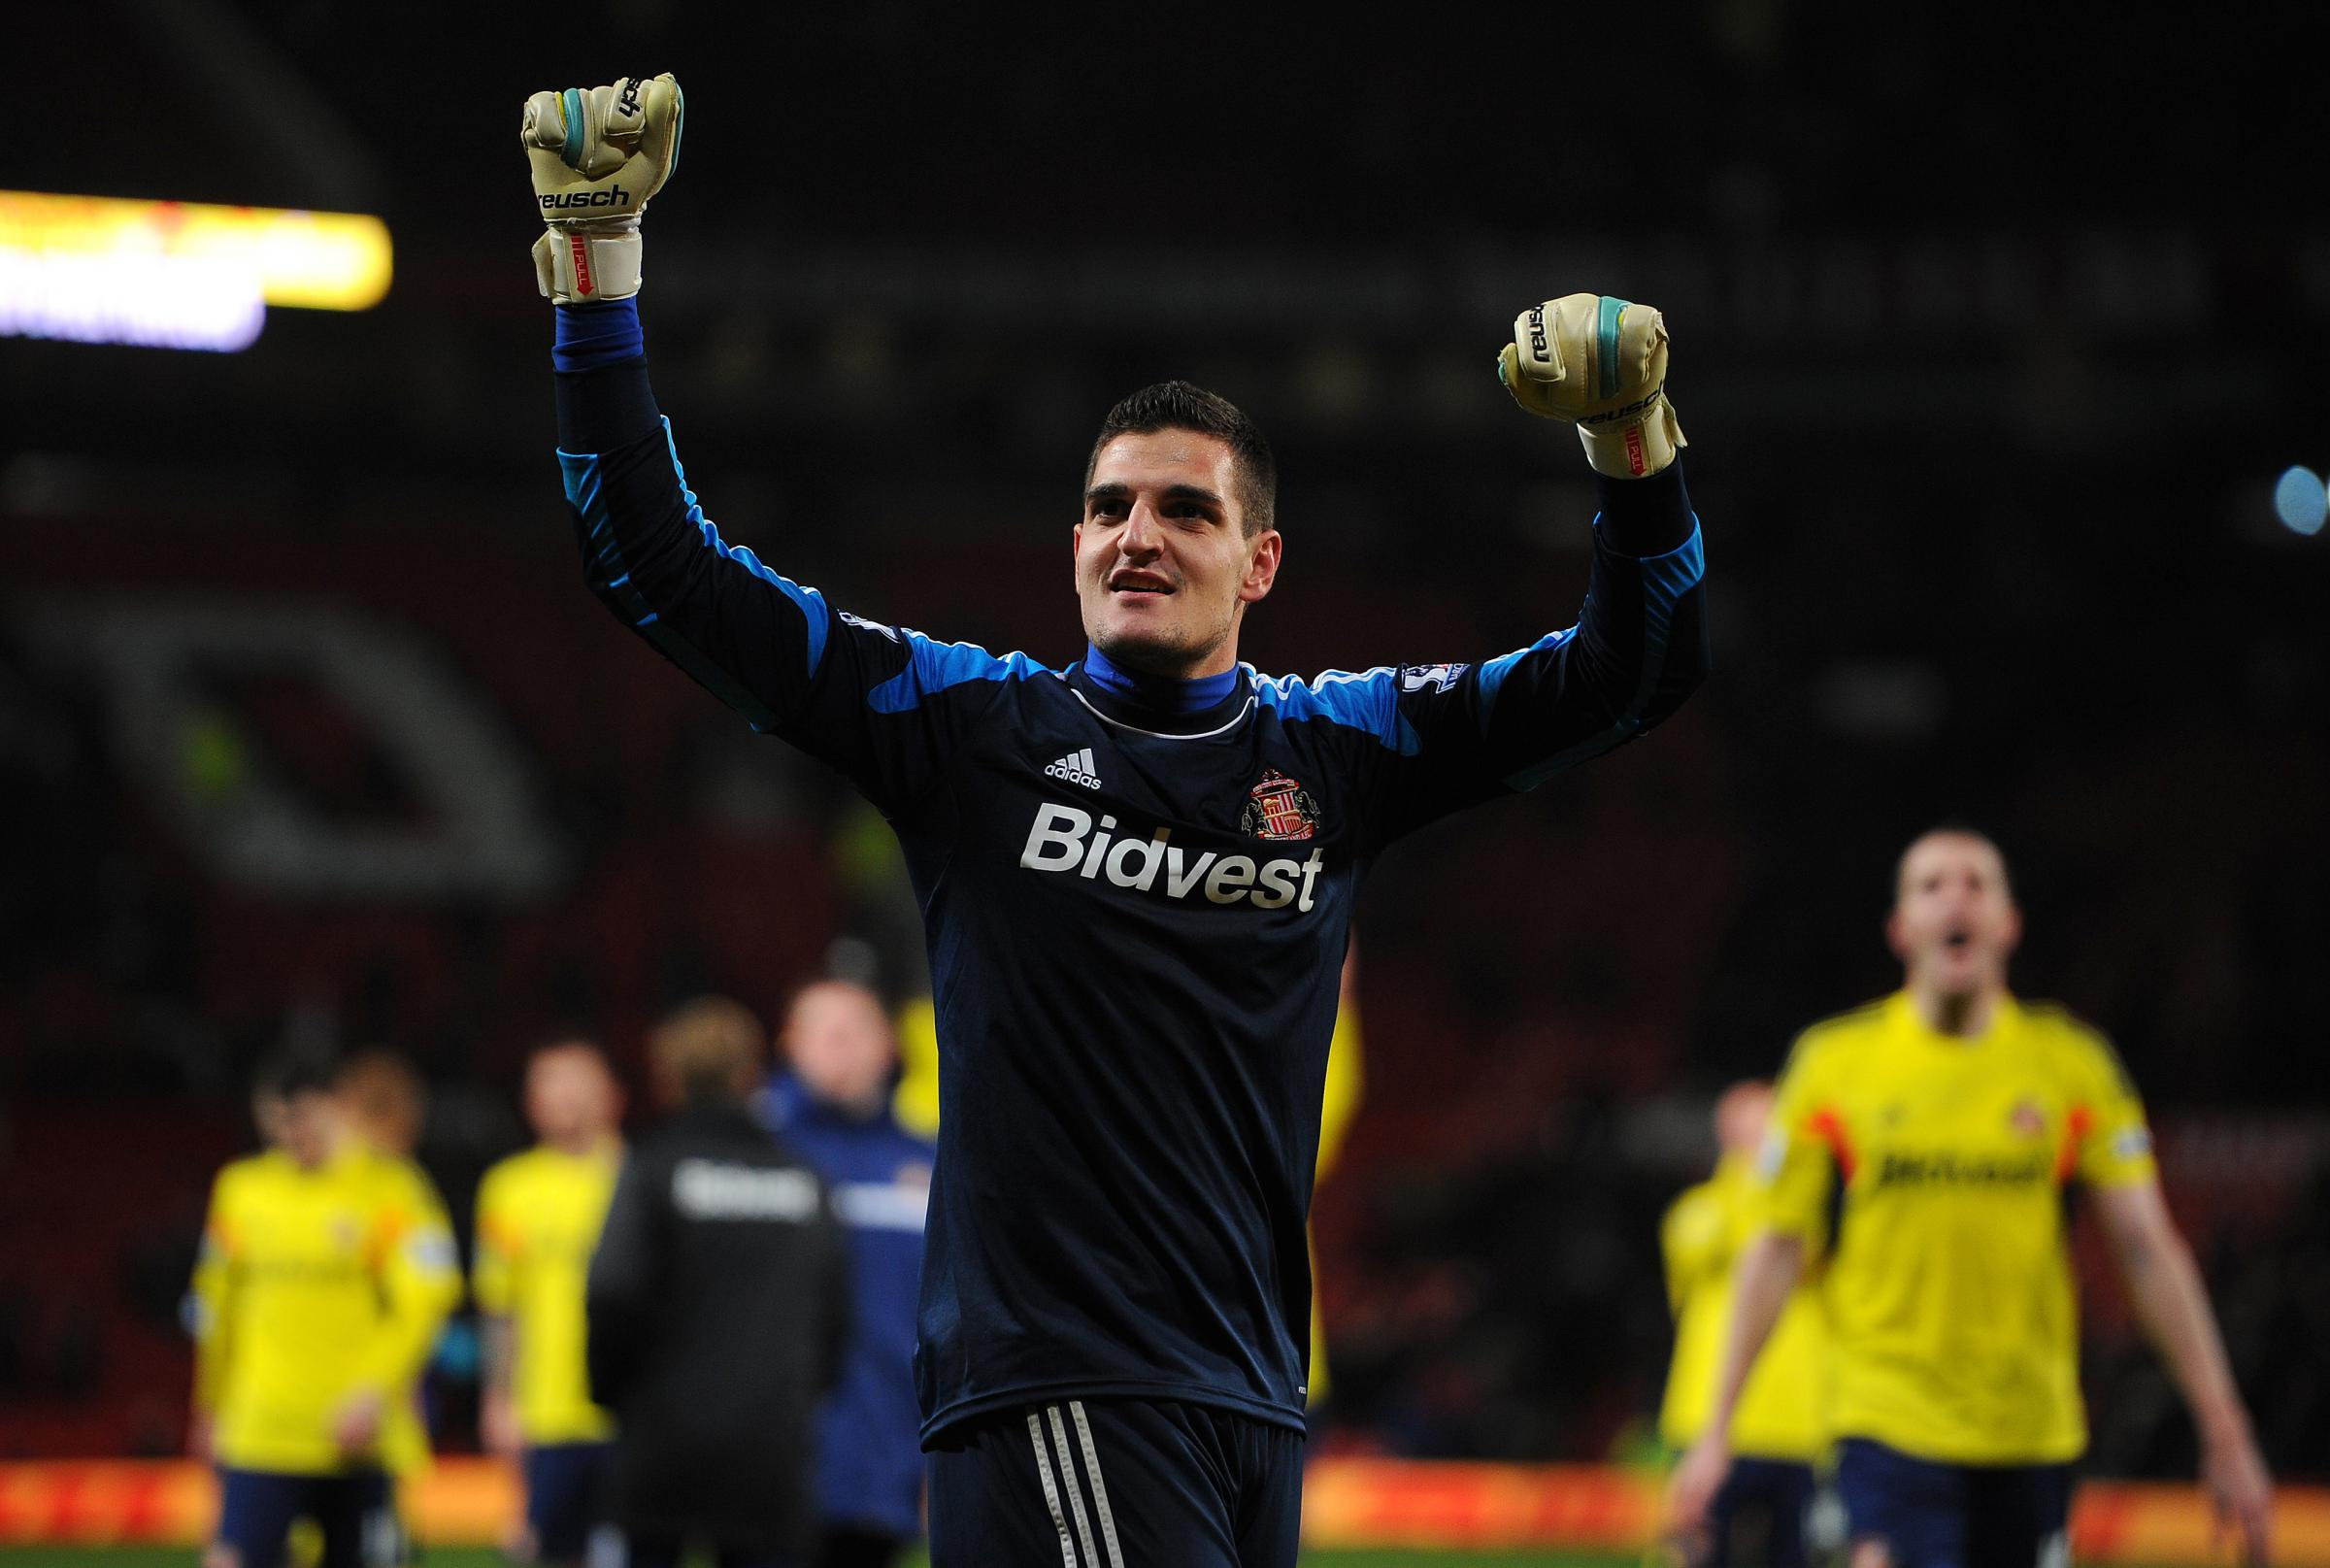 KEY MAN: Vito Mannone was one of Sunderland's key players this season - and the goalkeeper does not want to see the current squad ripped apart this summer